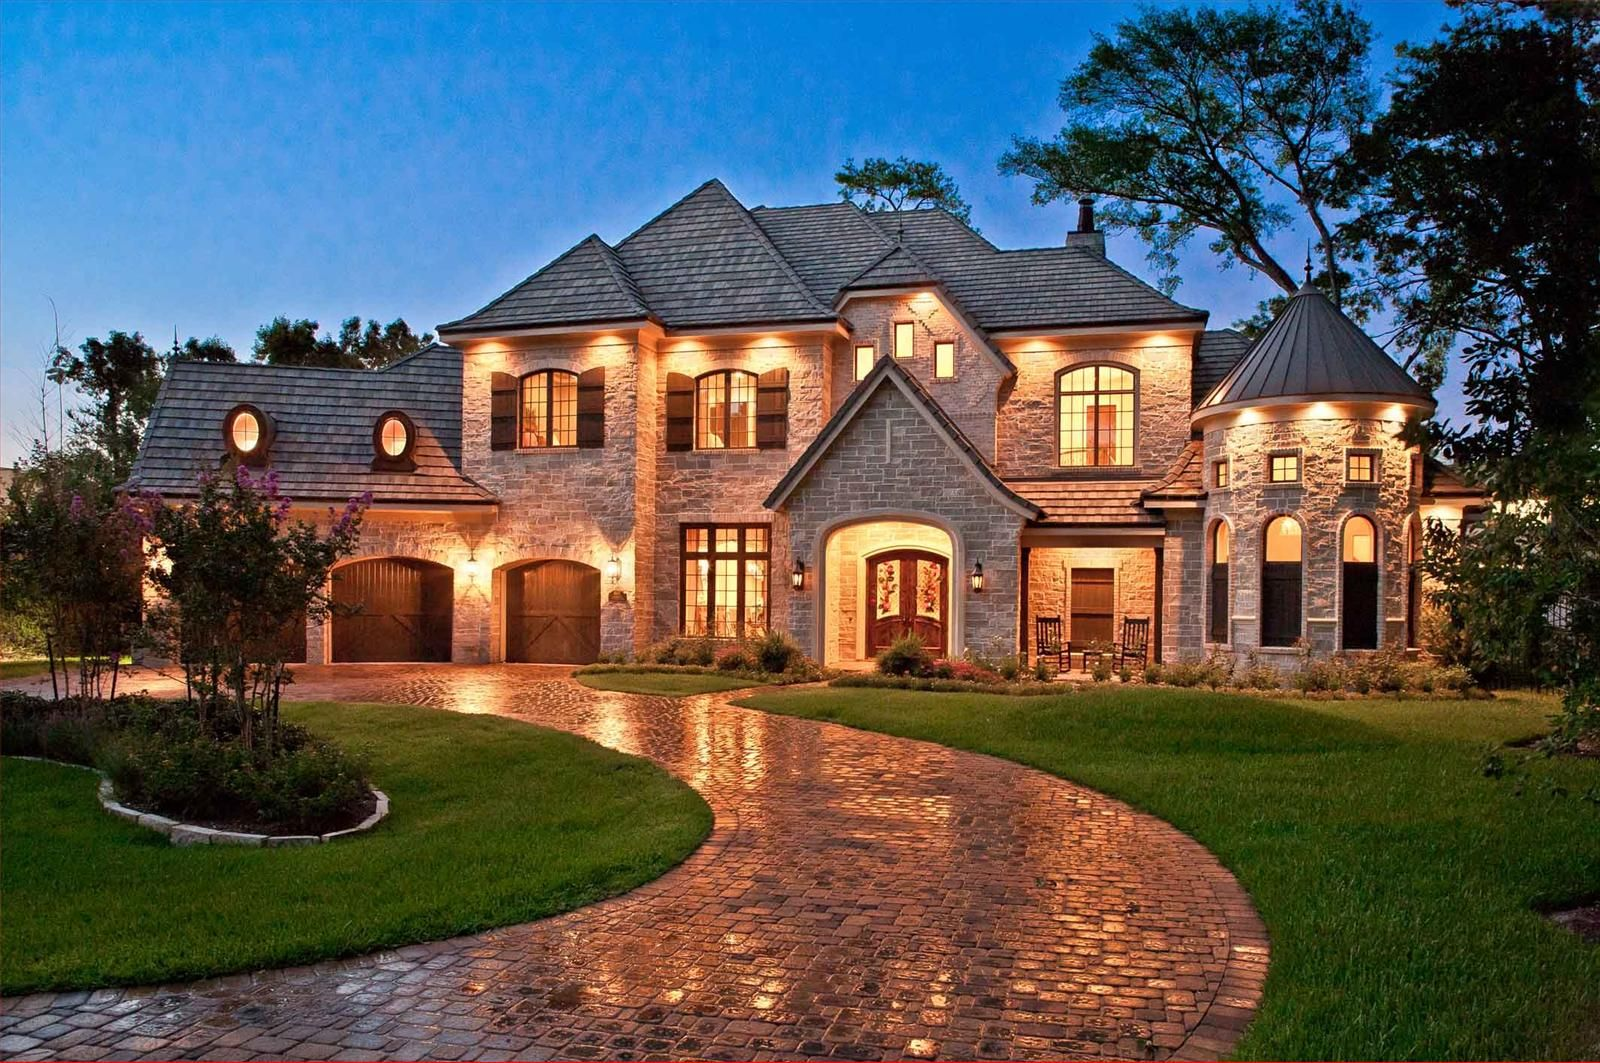 Gorgeous french country house design exterior with large French style home design